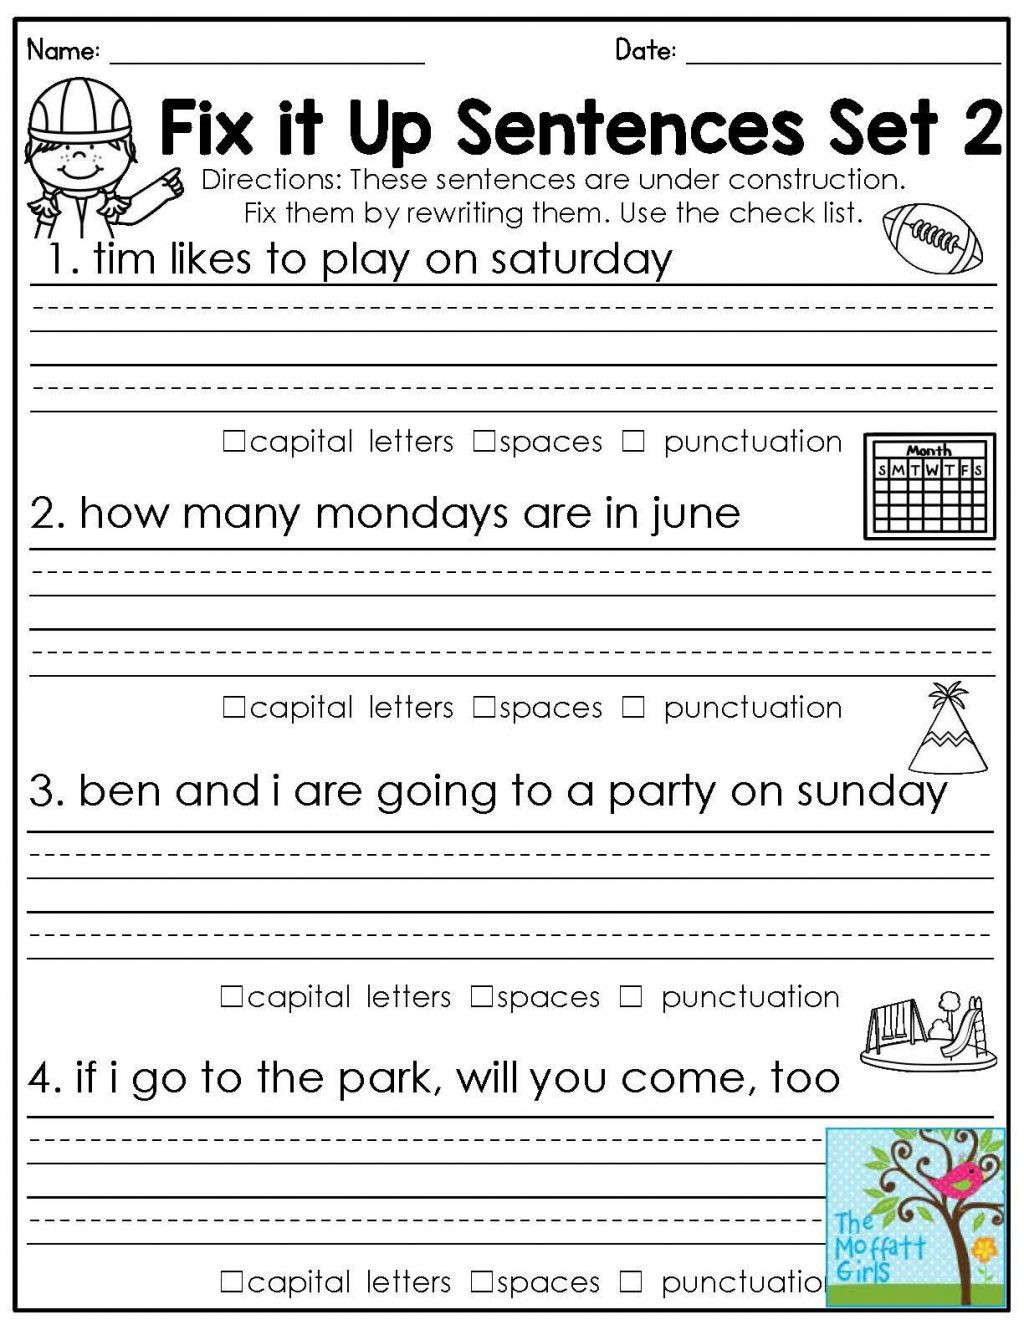 2nd Grade Grammar Worksheets 4 Free Grammar Worksheets Third Grade 3 Capitalization